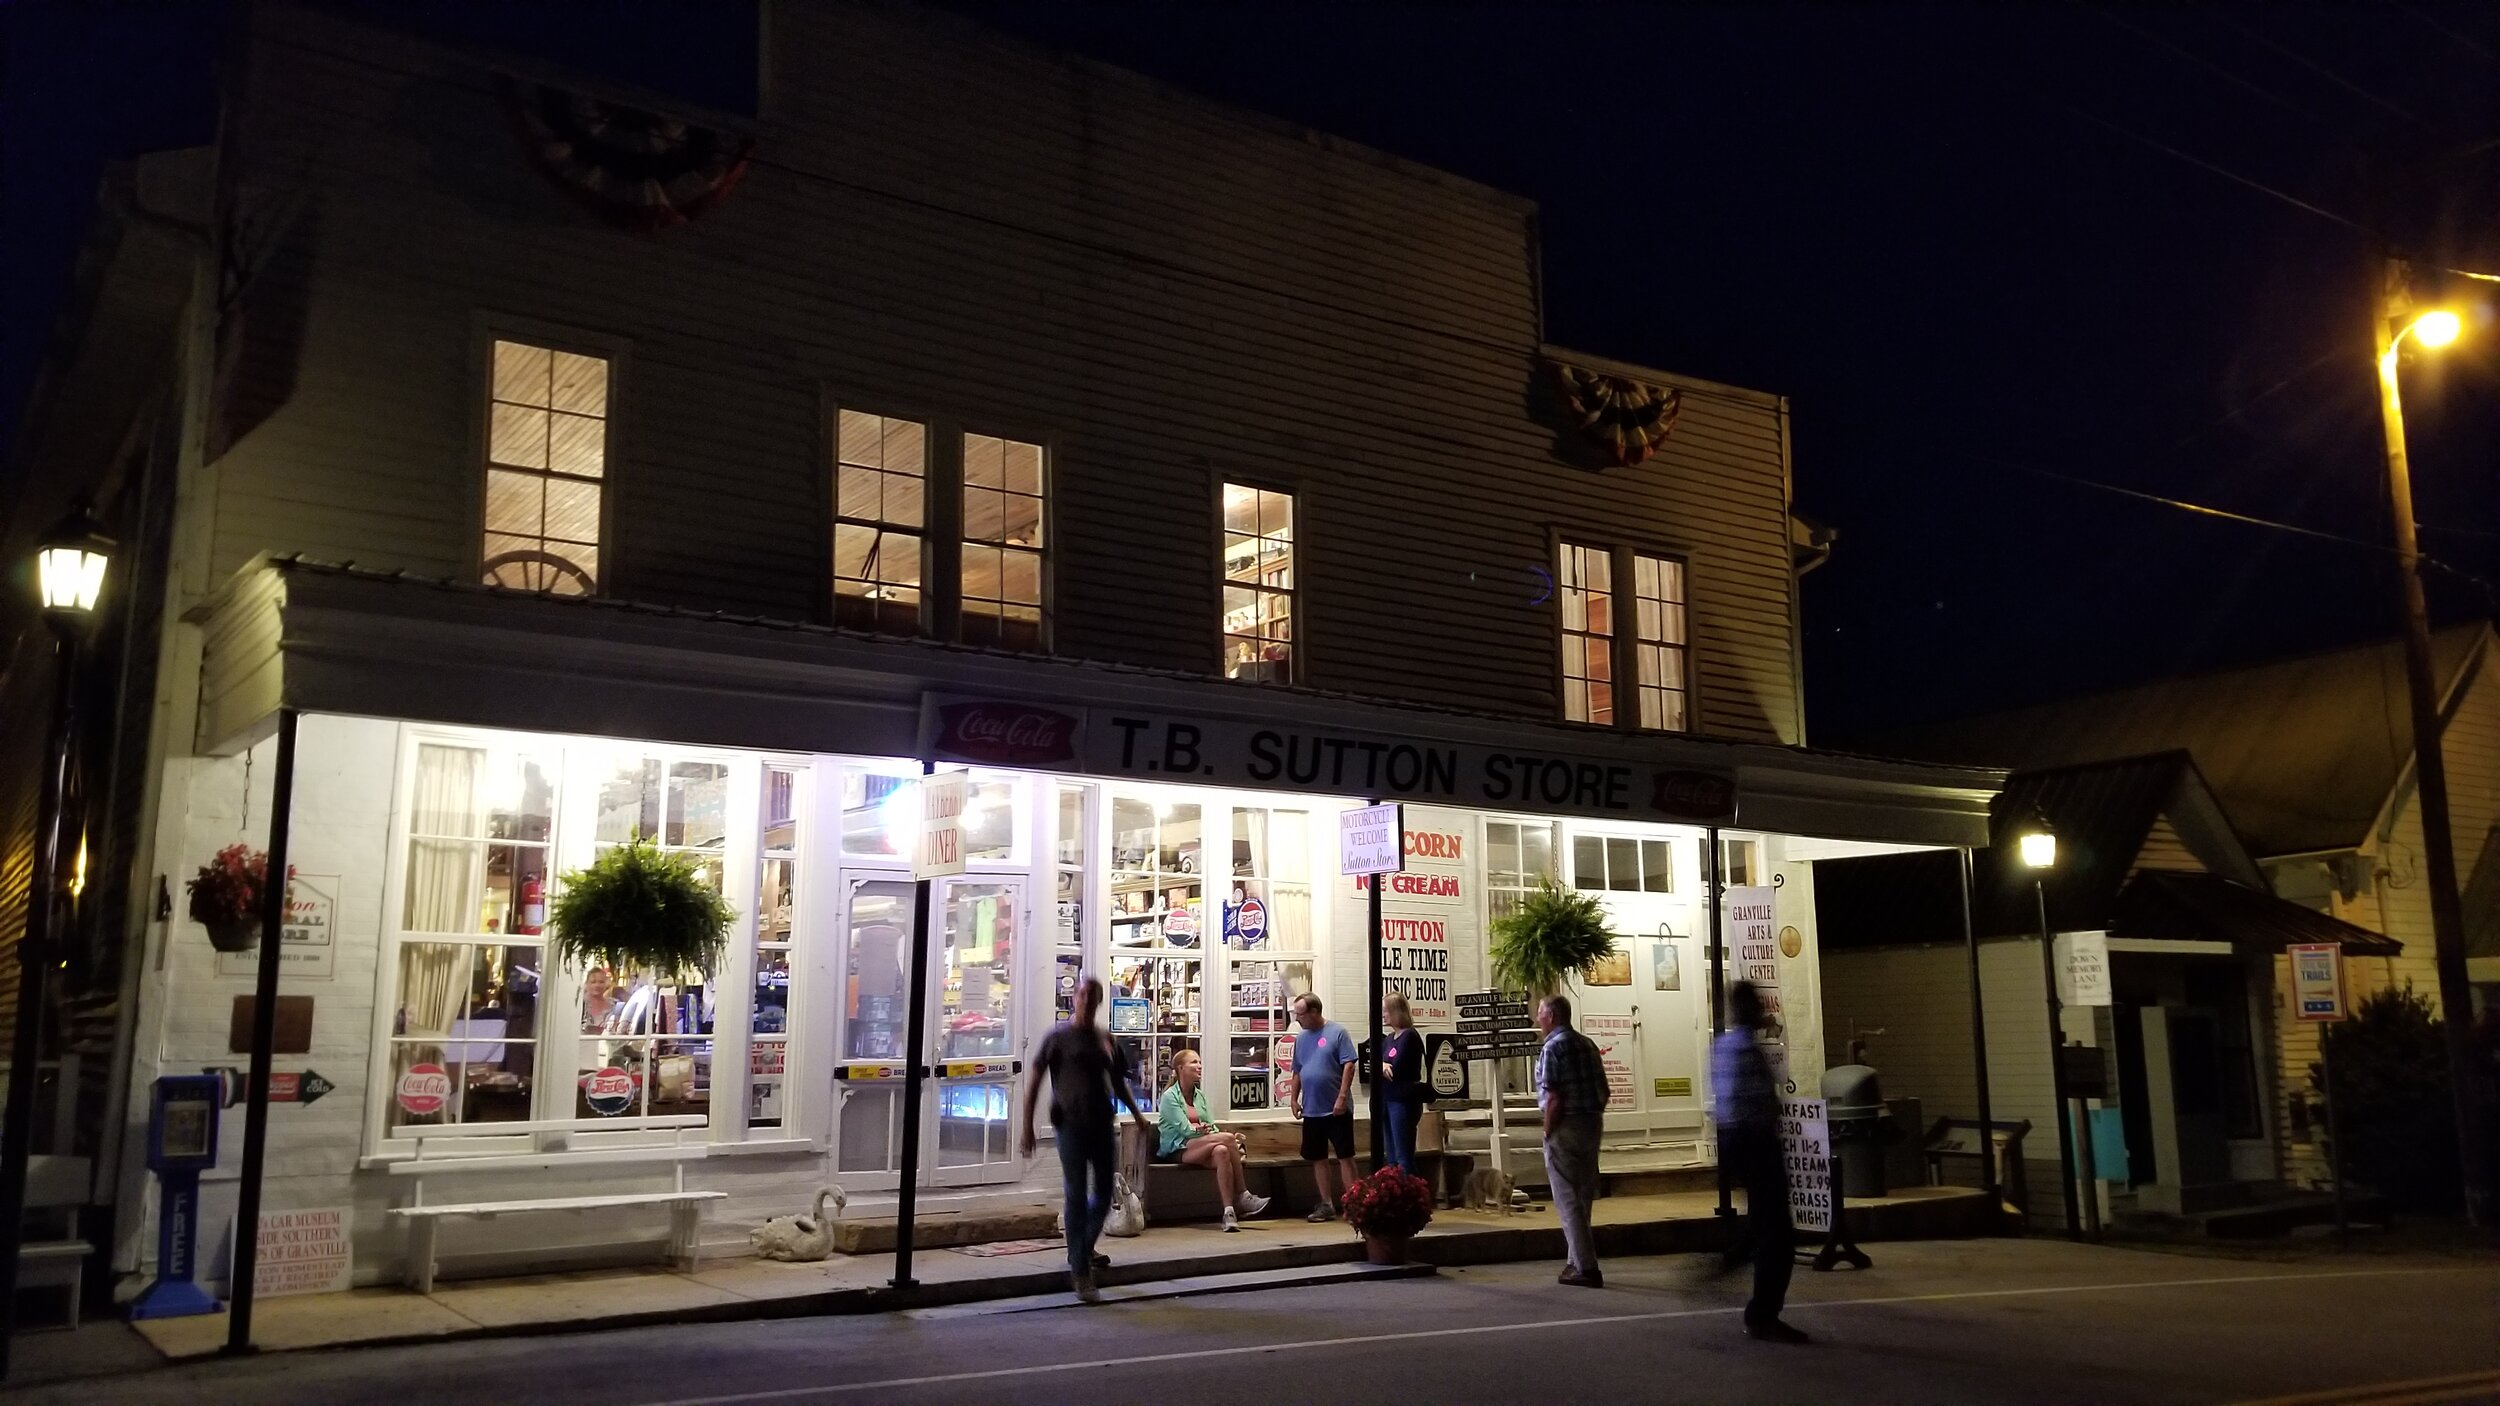 On a Saturday night the T.B. Sutton Store is THE hub of activity in Granville, TN.